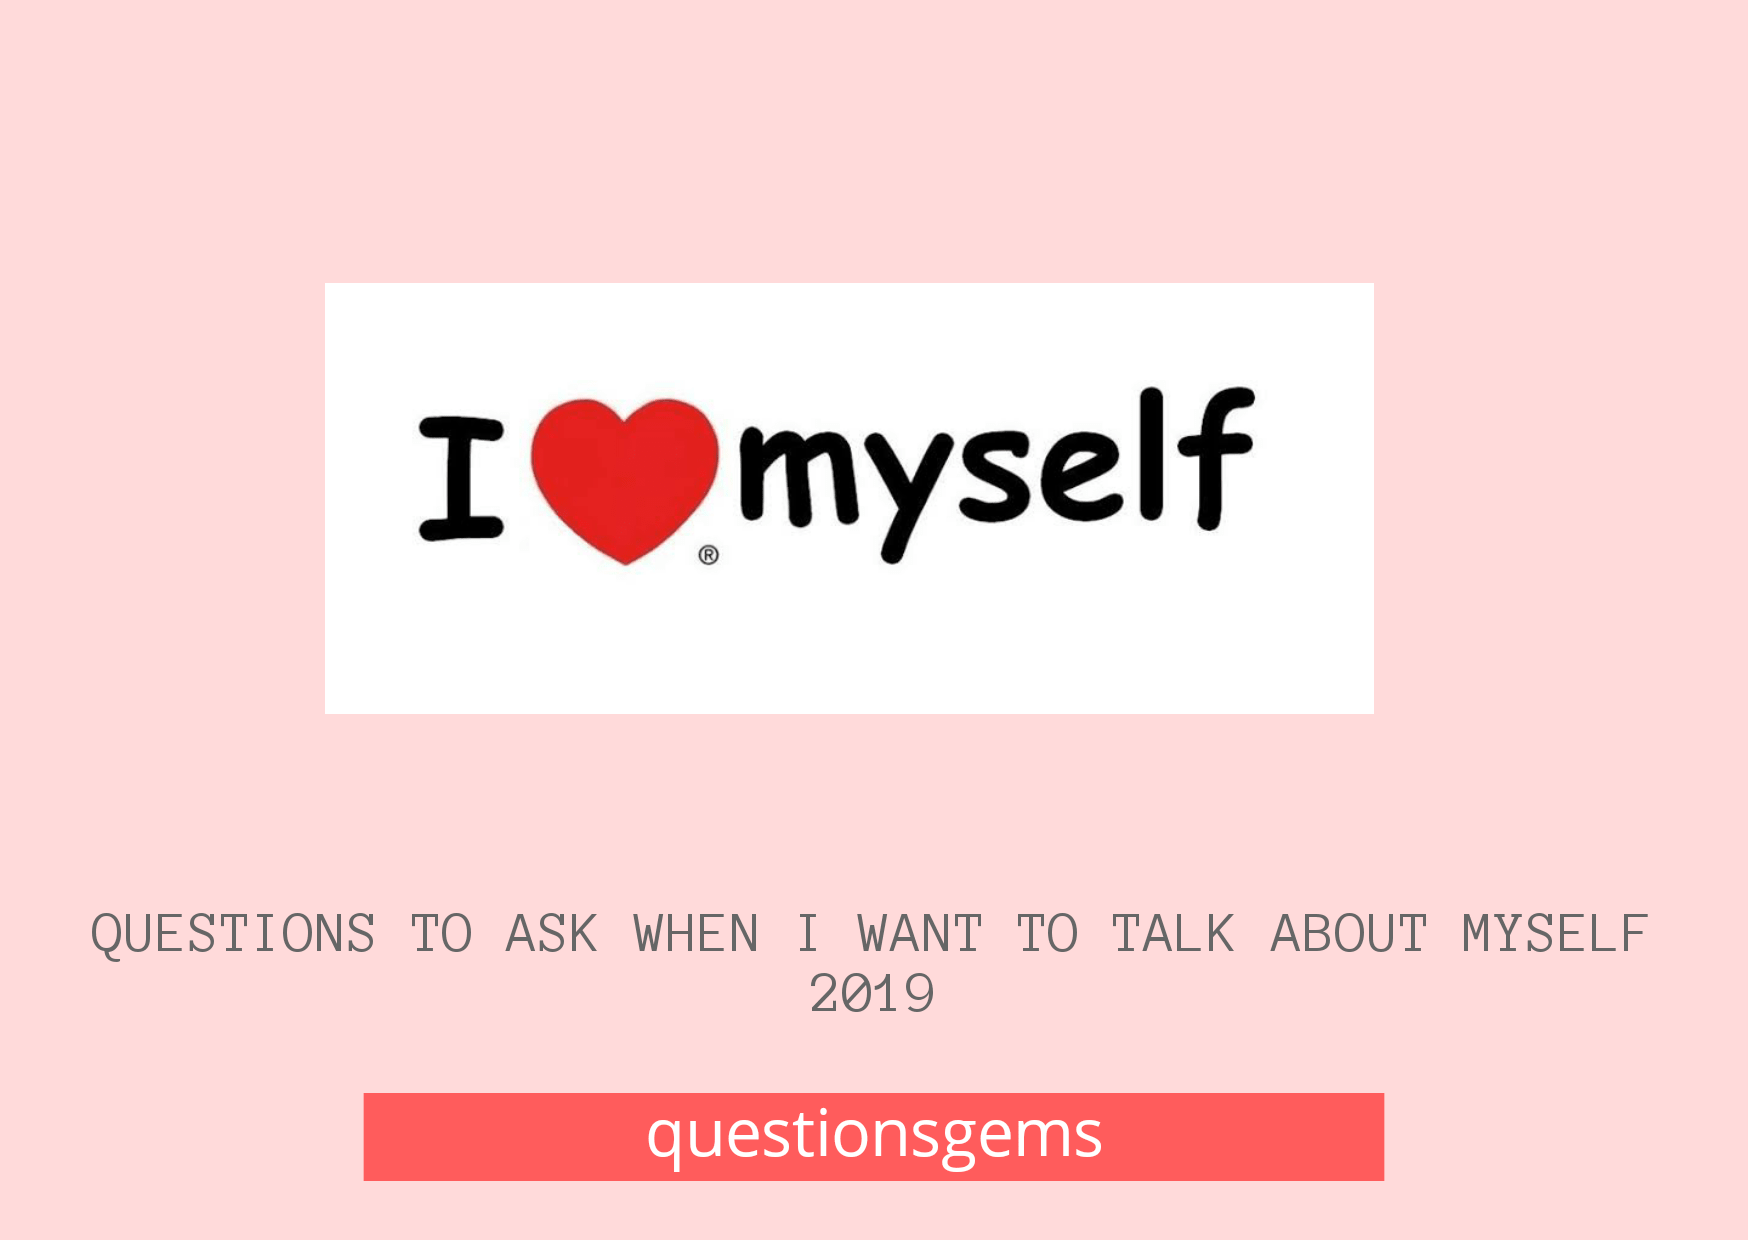 Questions To Ask When I Want To Talk About Myself 2019